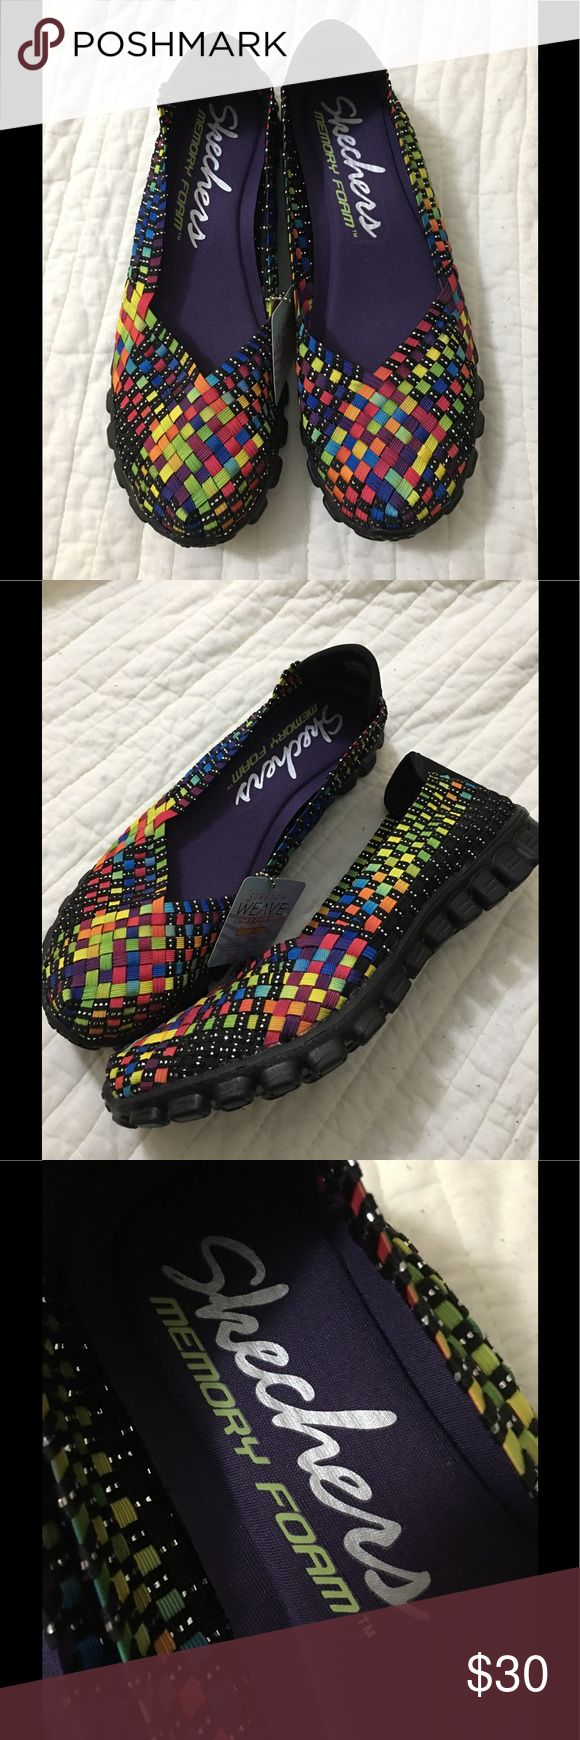 Skechers Shoes Multi-color Stretch weave by Skechers with memory foam. Skechers Shoes